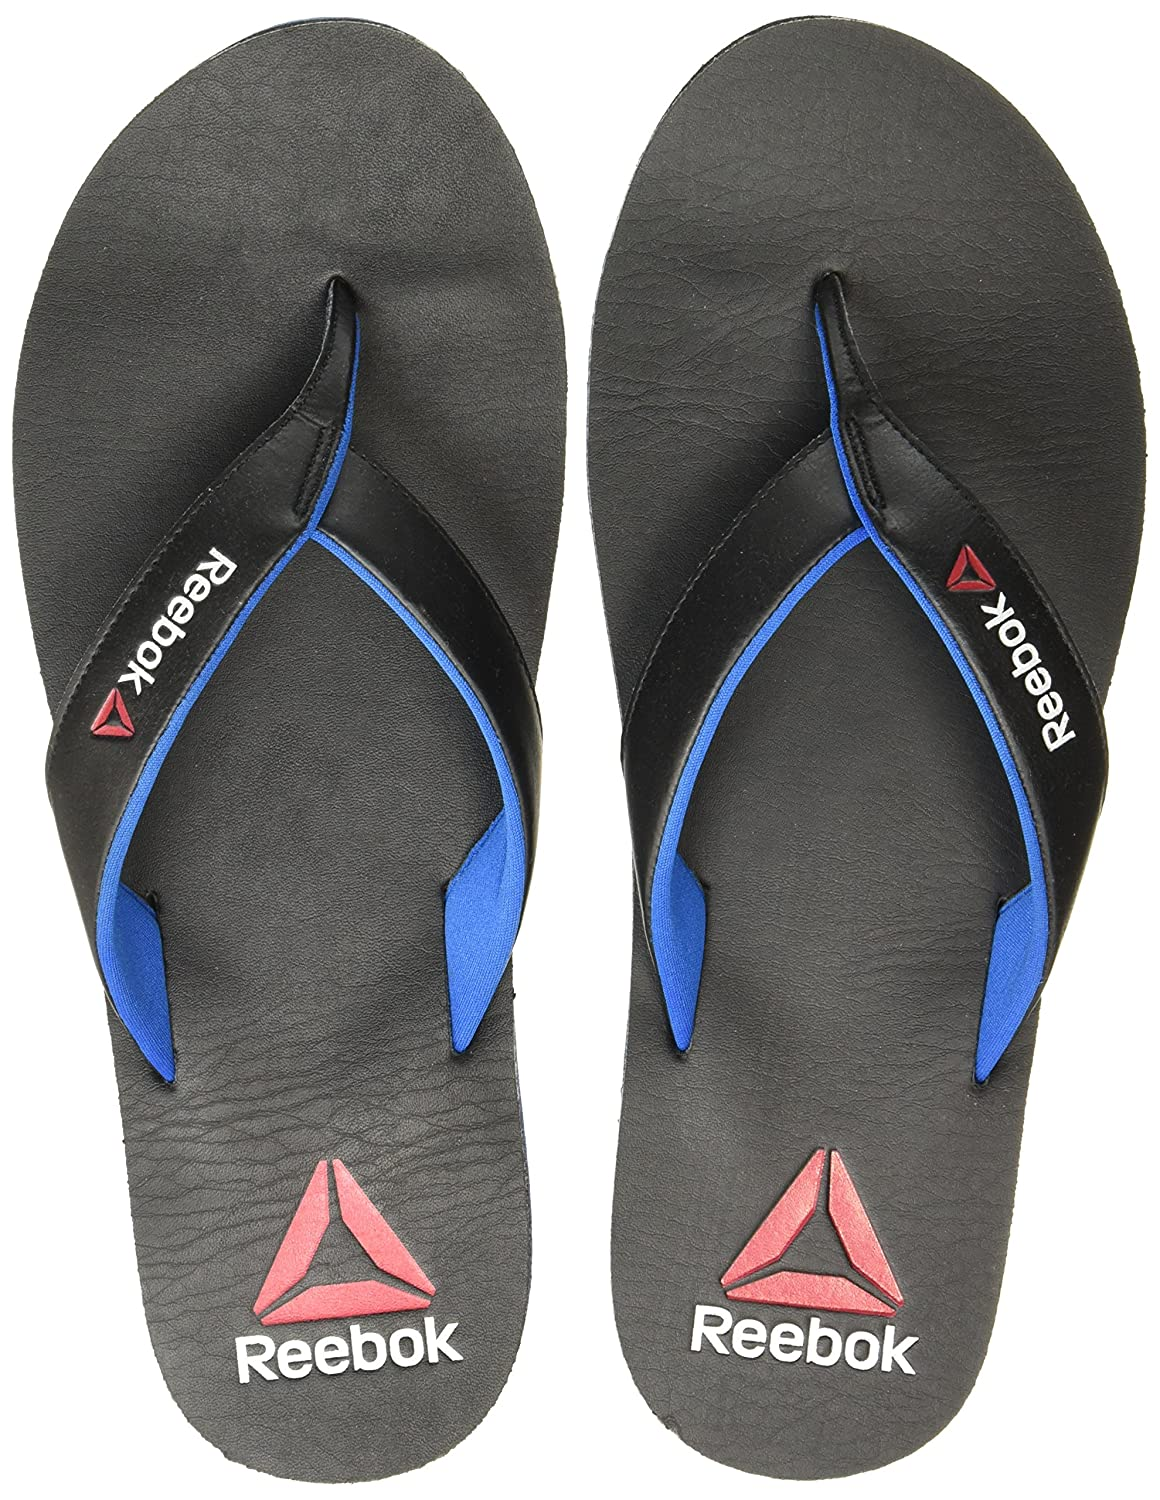 7273f38bbfd31d Reebok Men s Black Blue Sport Hawaii Thong Sandals - 11 UK India (45.5  EU)(12 US) (BD3878)  Buy Online at Low Prices in India - Amazon.in